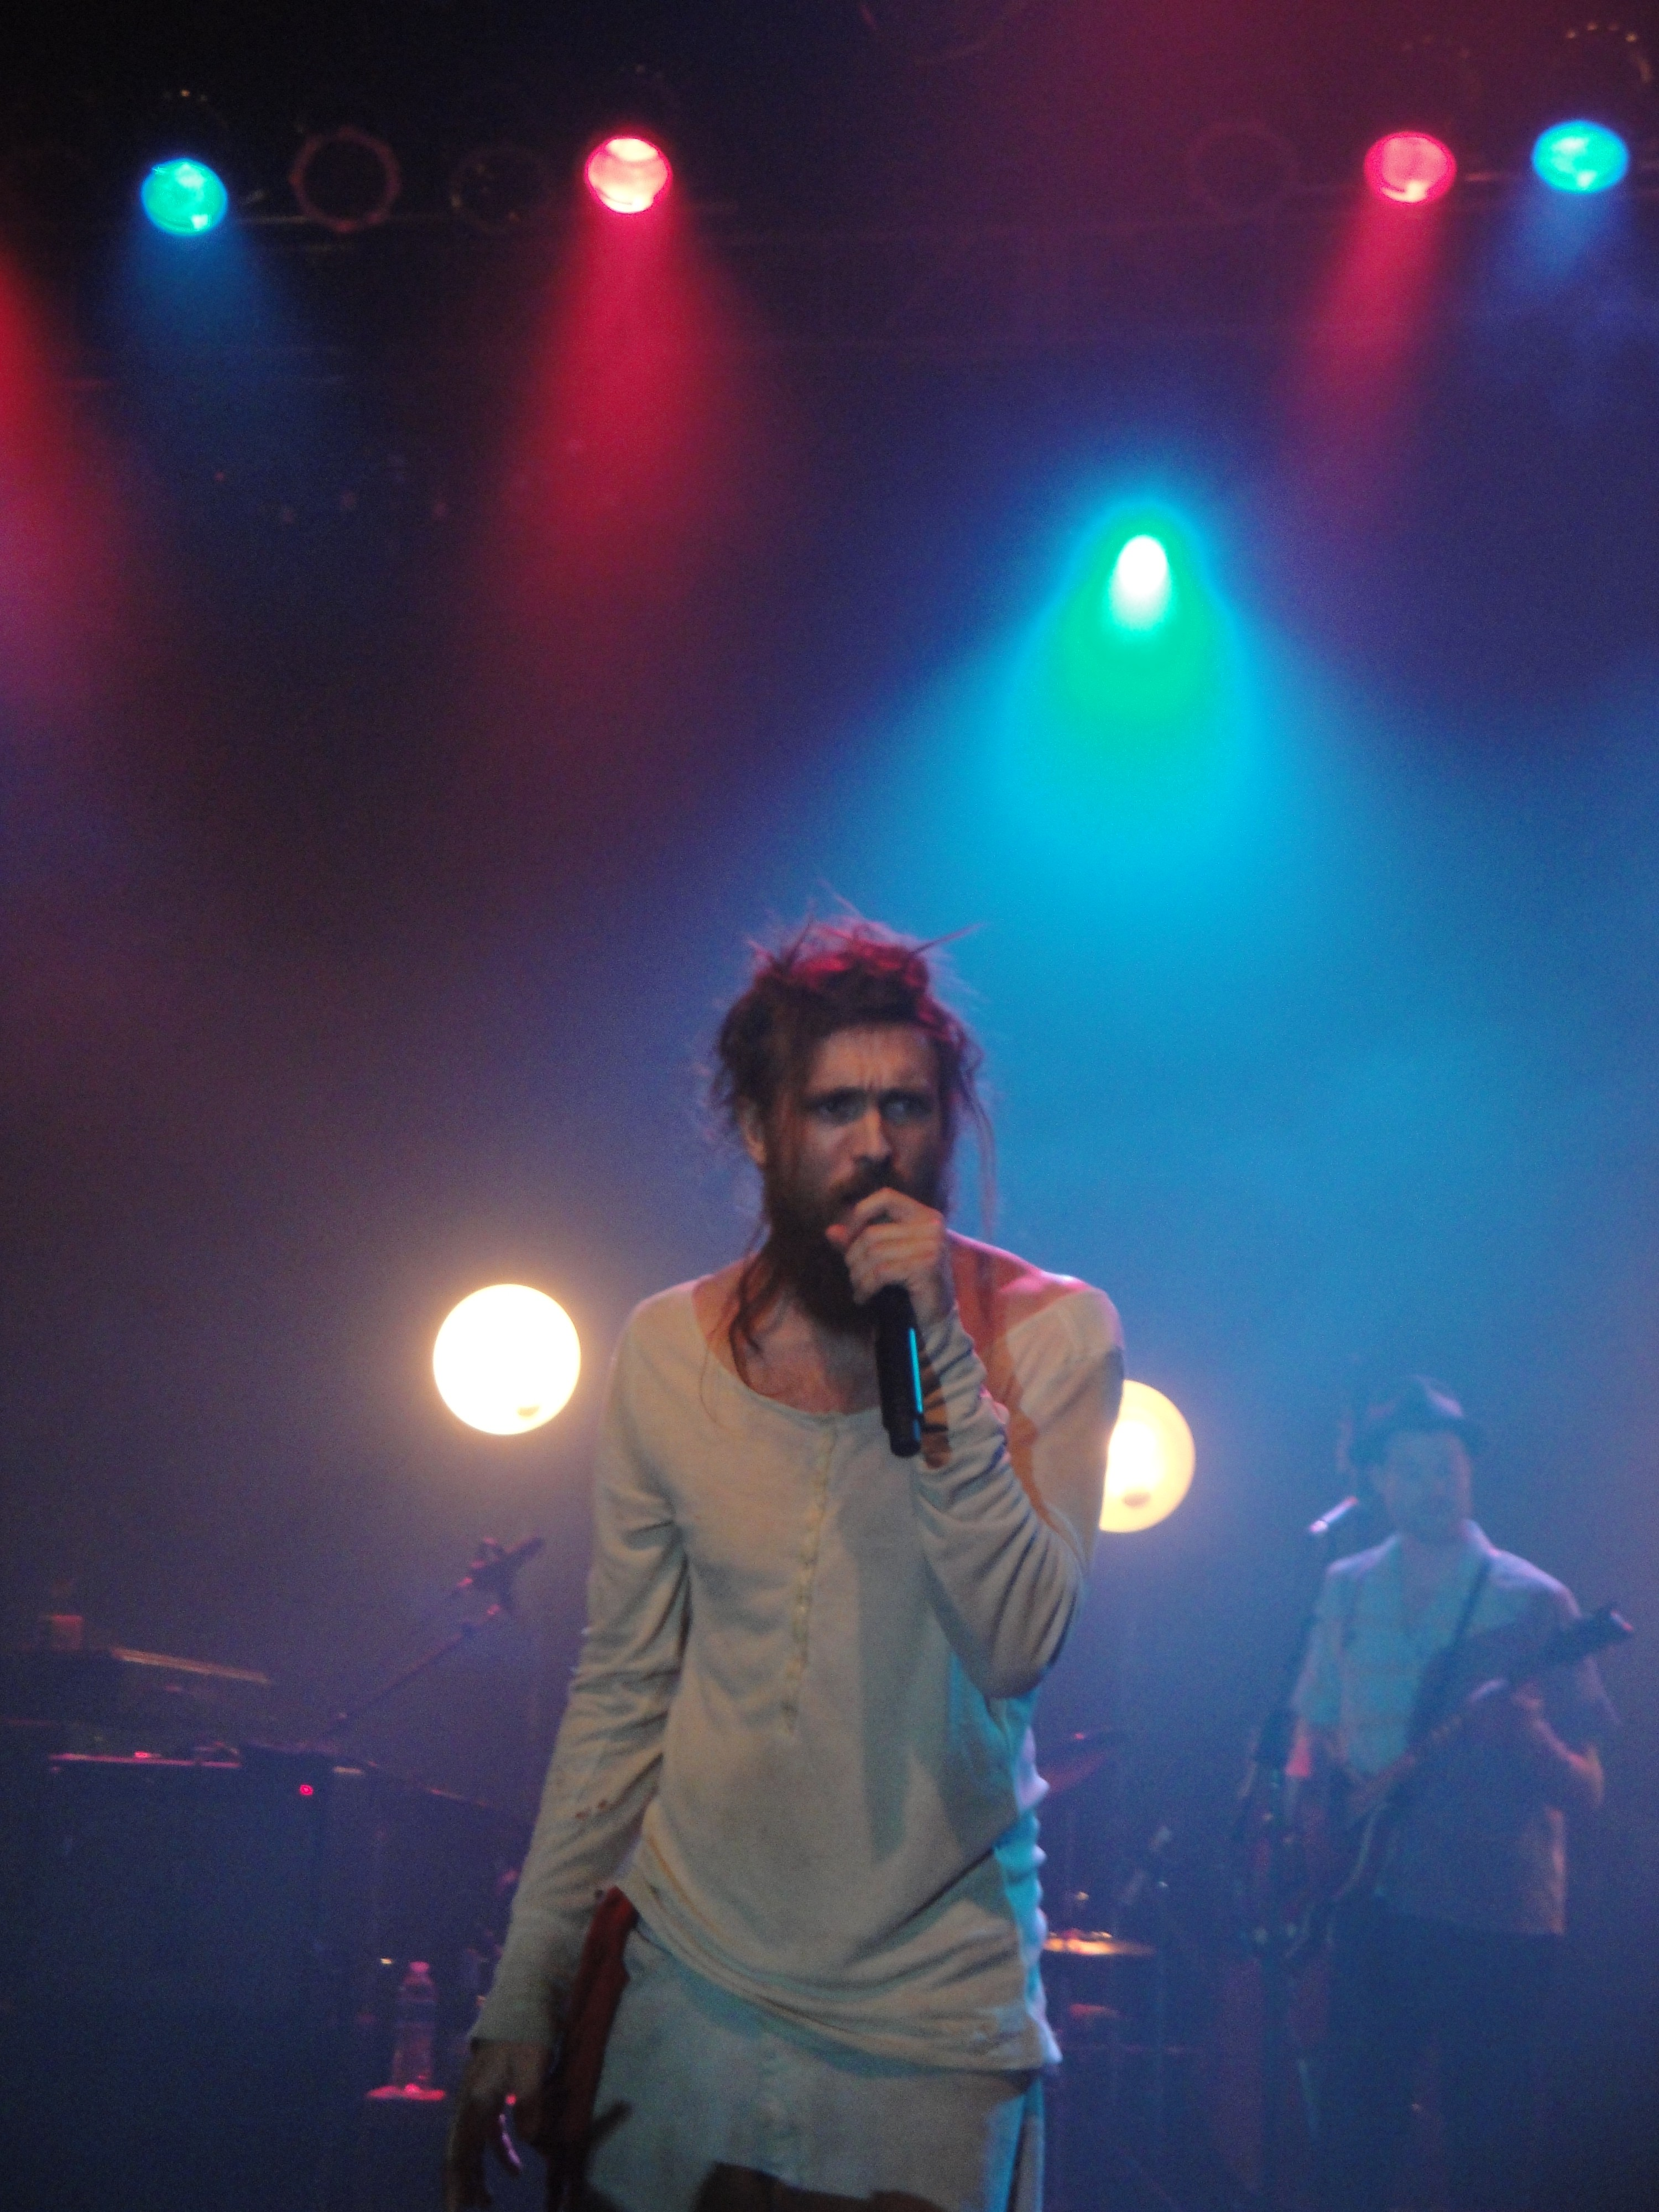 Show Review: Edward Sharpe & The Magnetic Zeros